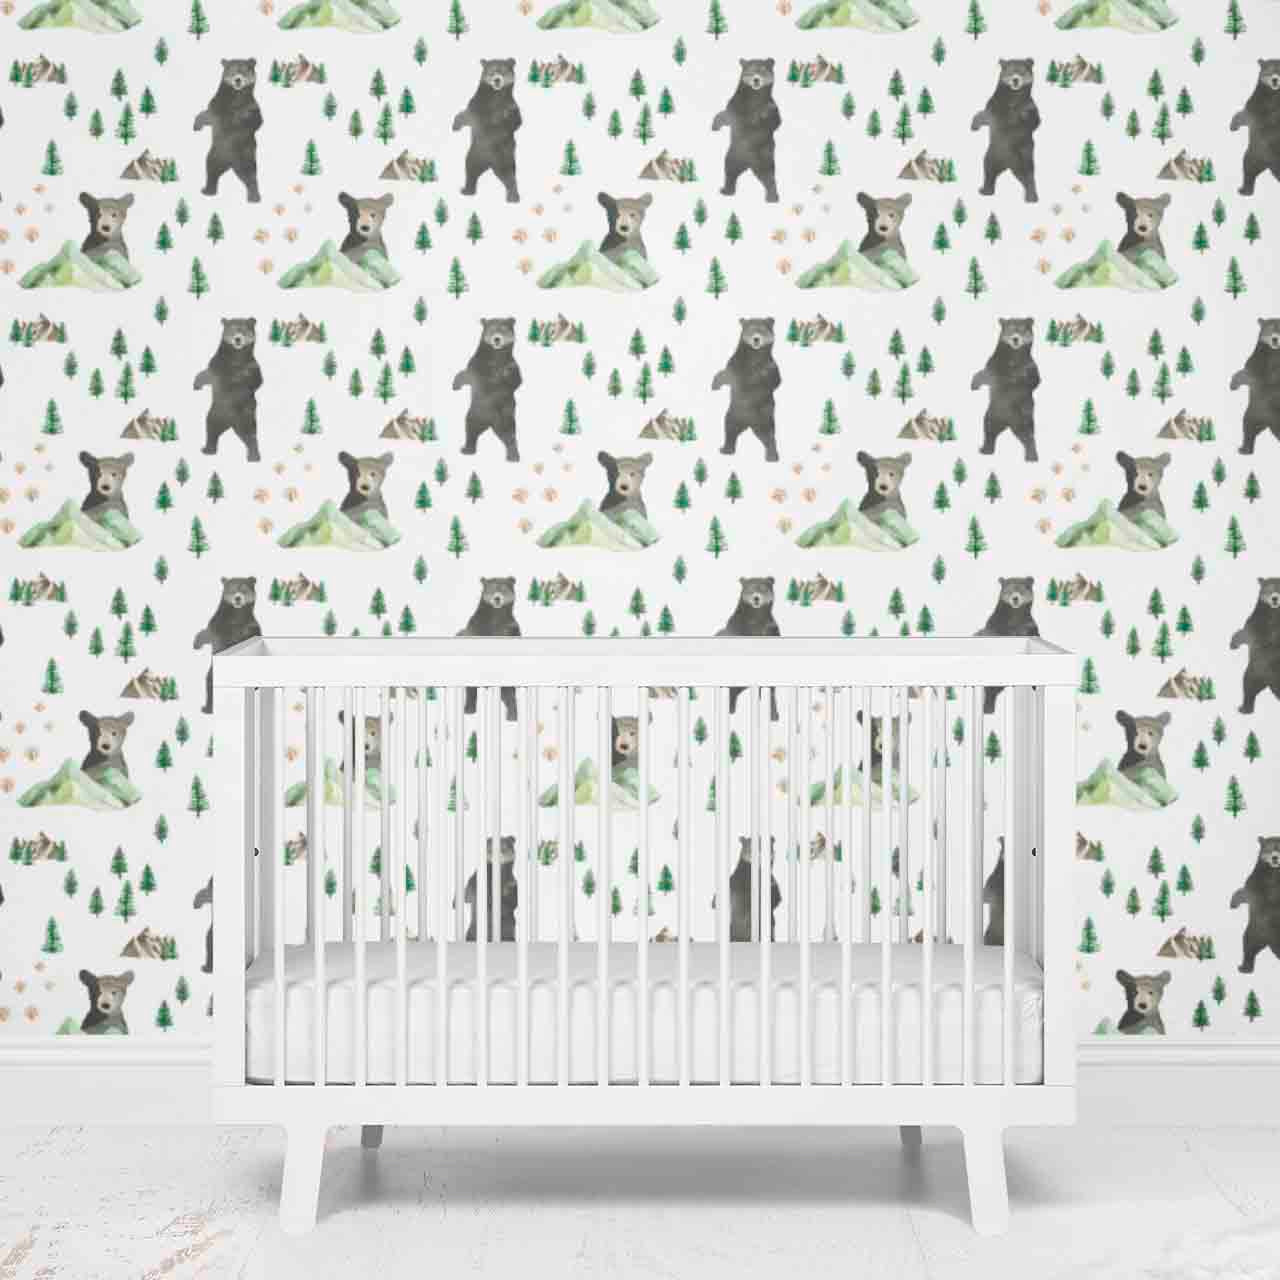 Brody S Bear Mountain Adventure Removable Wallpaper